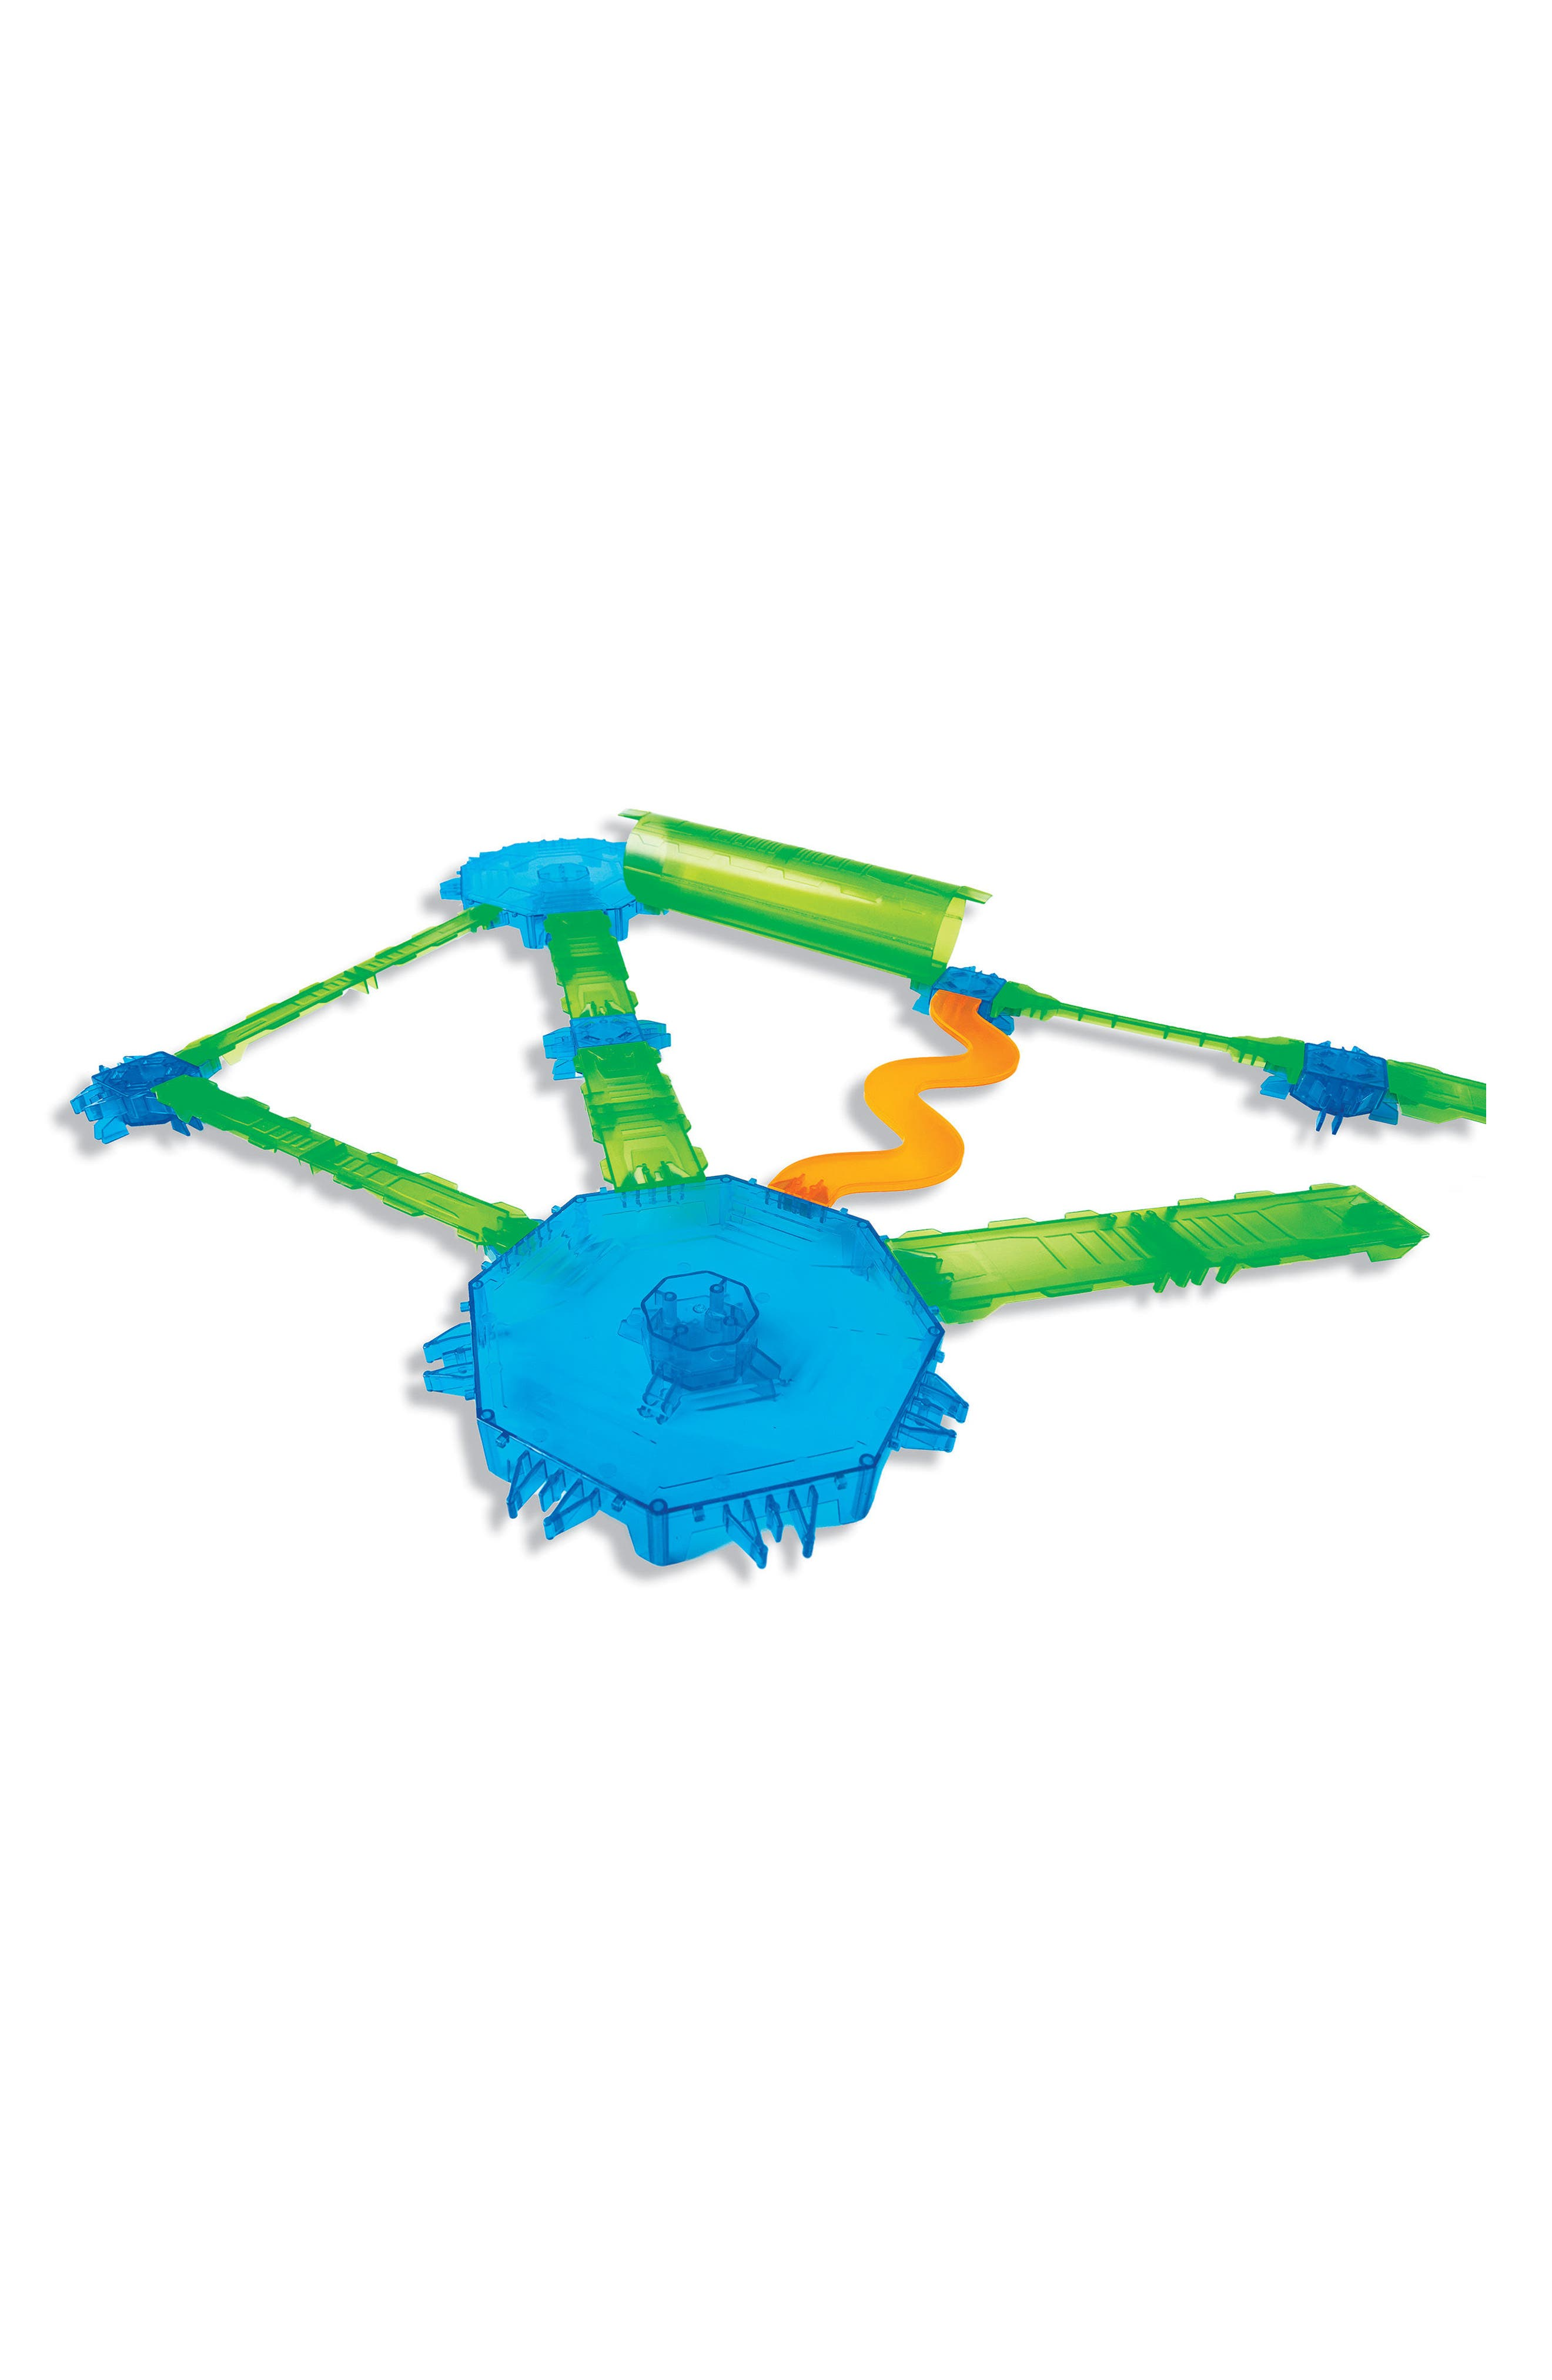 Main Image - Diggin Spinos Mega Trax Challenge 19-Piece Magnetic Toy